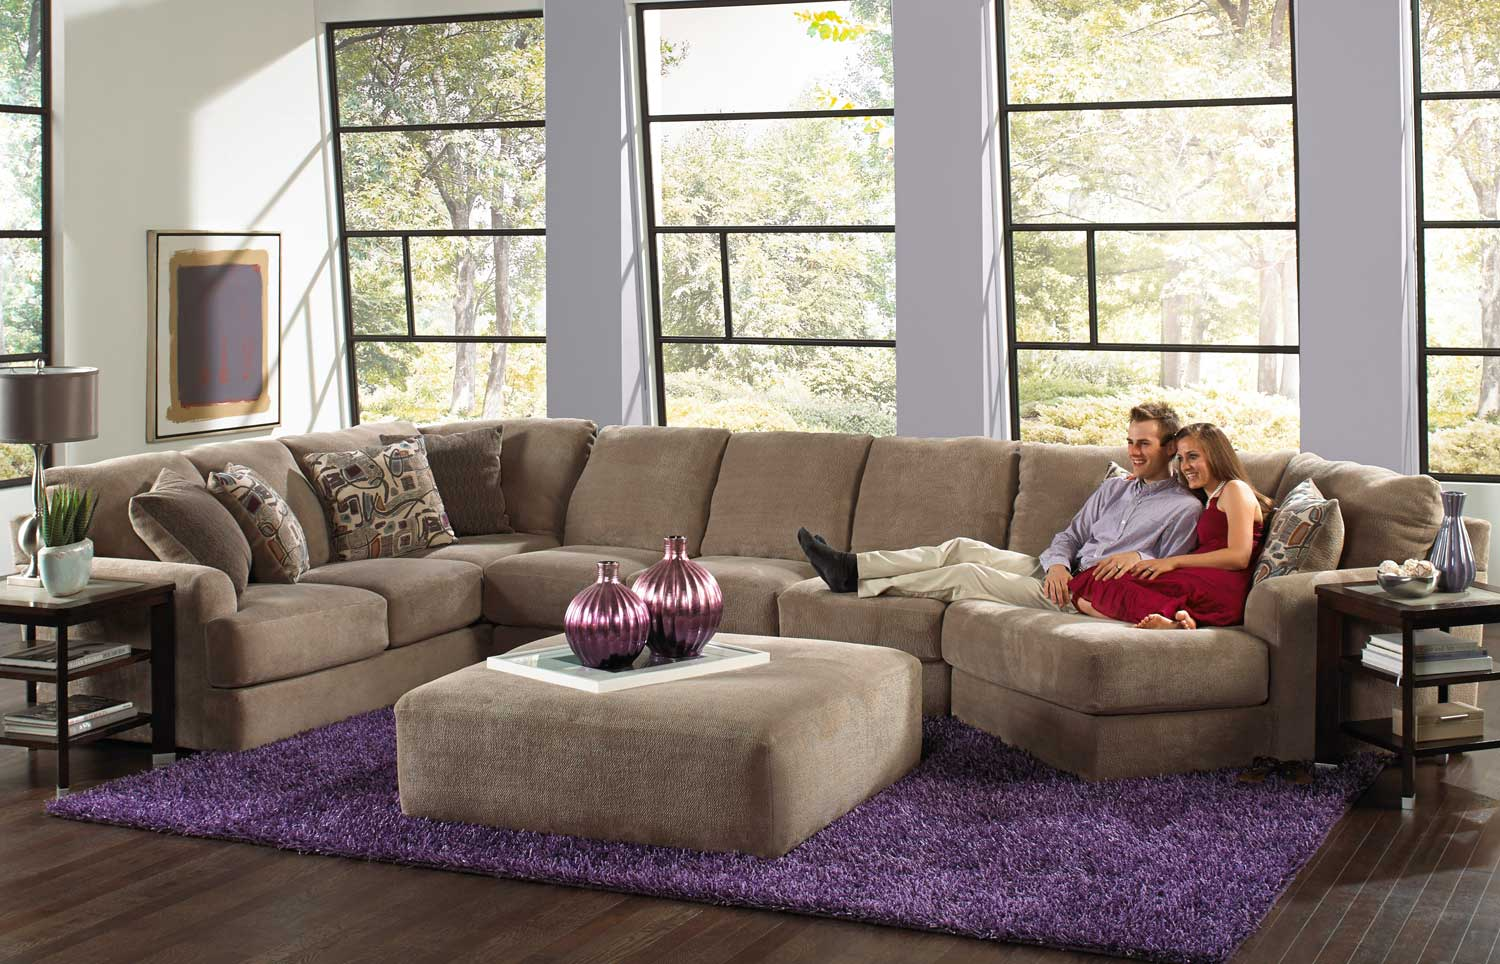 Jackson Malibu Large Chaise Sectional With Ottoman Set B